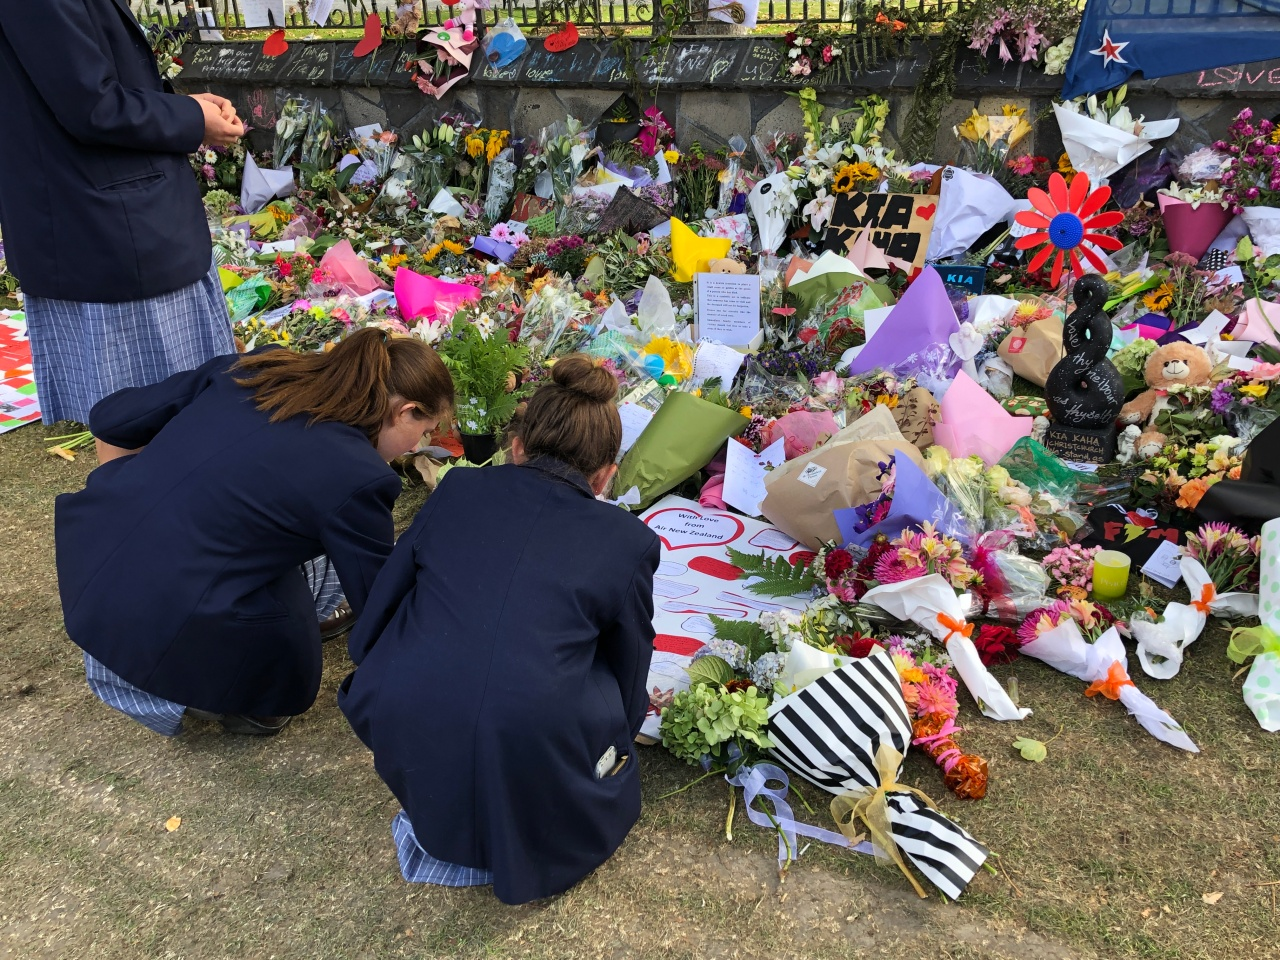 Three high school students write a note on a tribute board surrounded by floral tributes for the victims of the Christchurch terrorist attacks